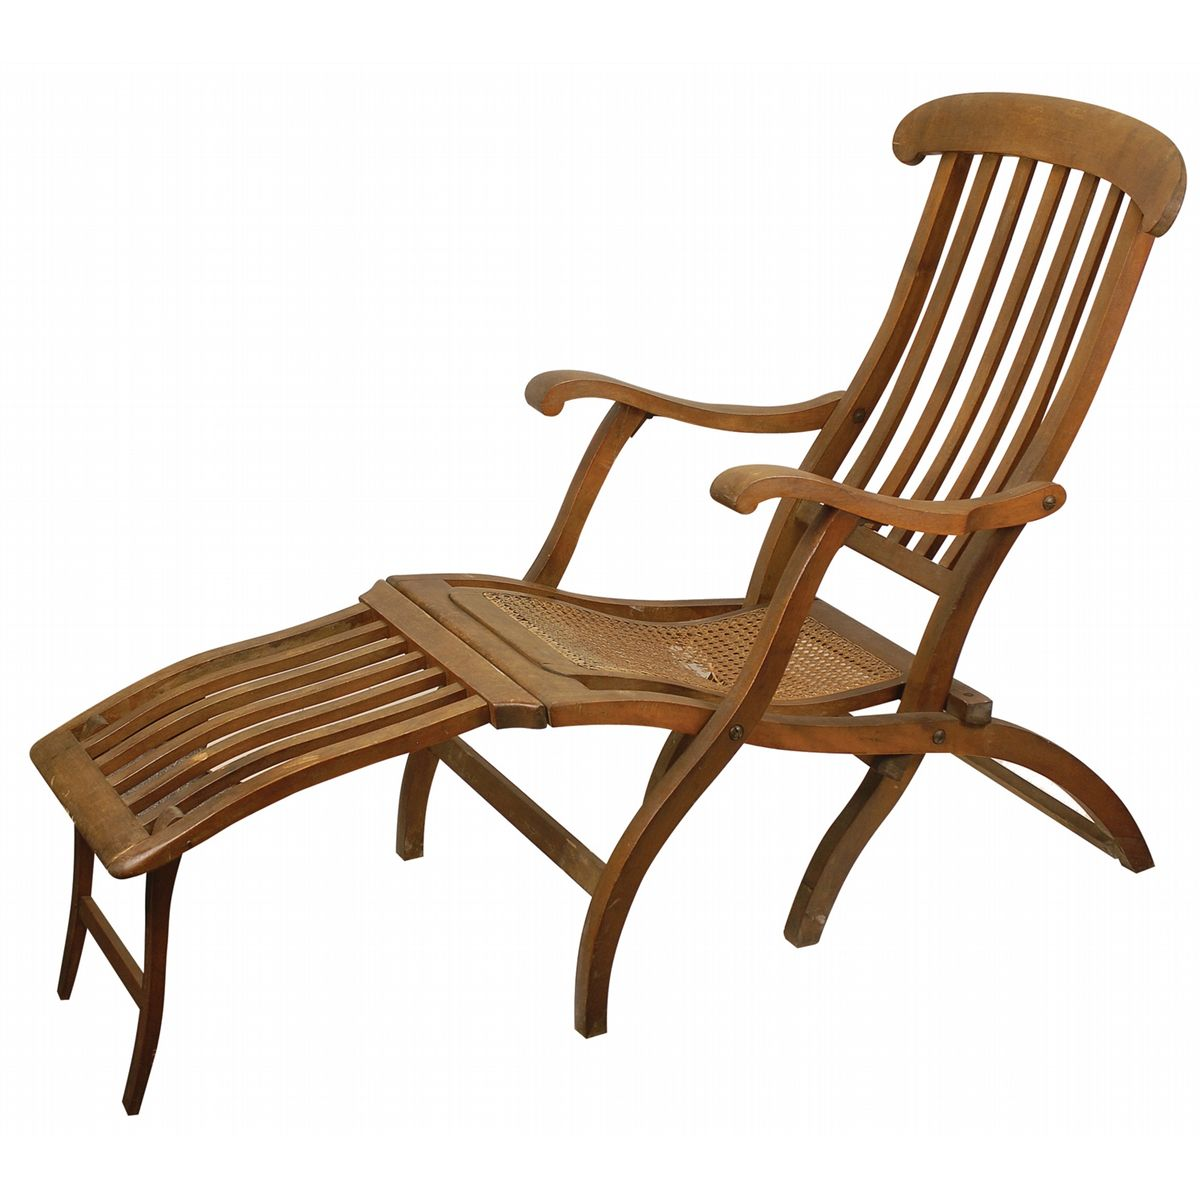 Titanic Deck Chair Titanic Deck Chair